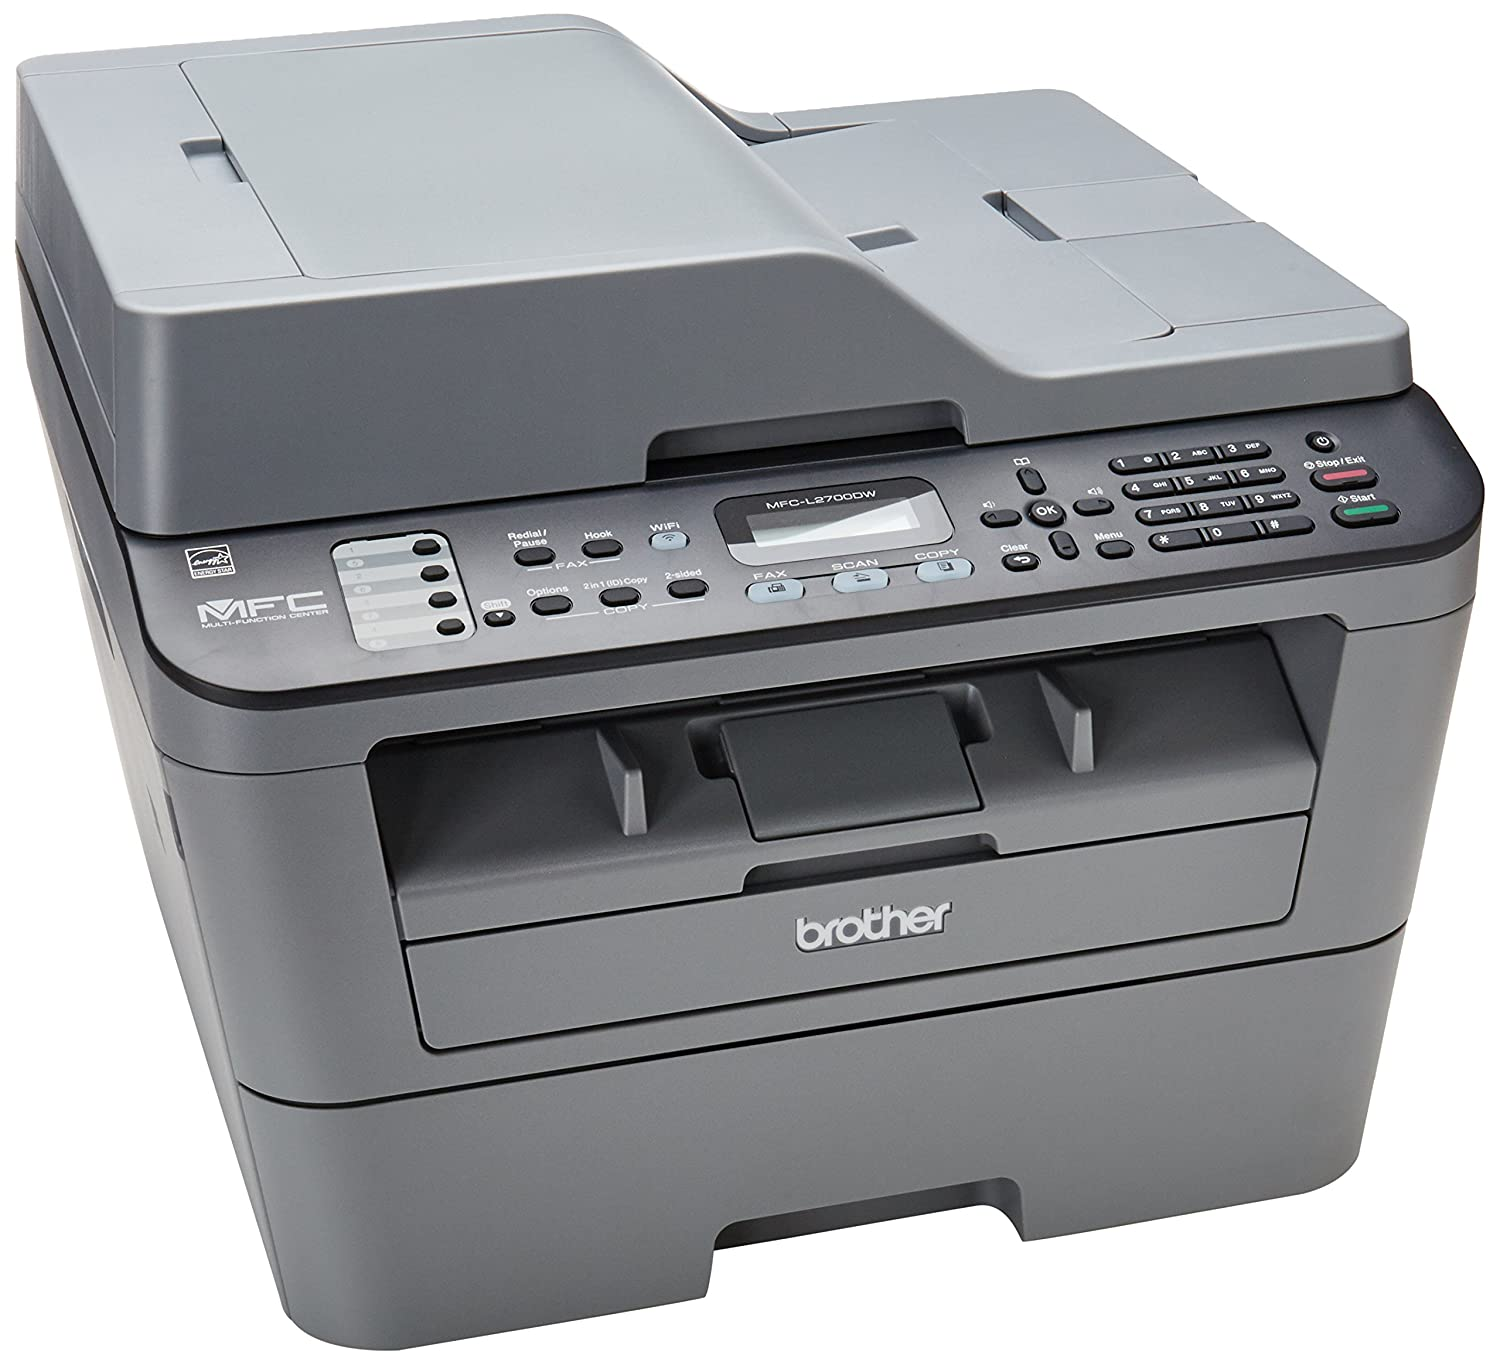 Brother Mfcl2700Dw Compact Laser All-In One Printer With ...